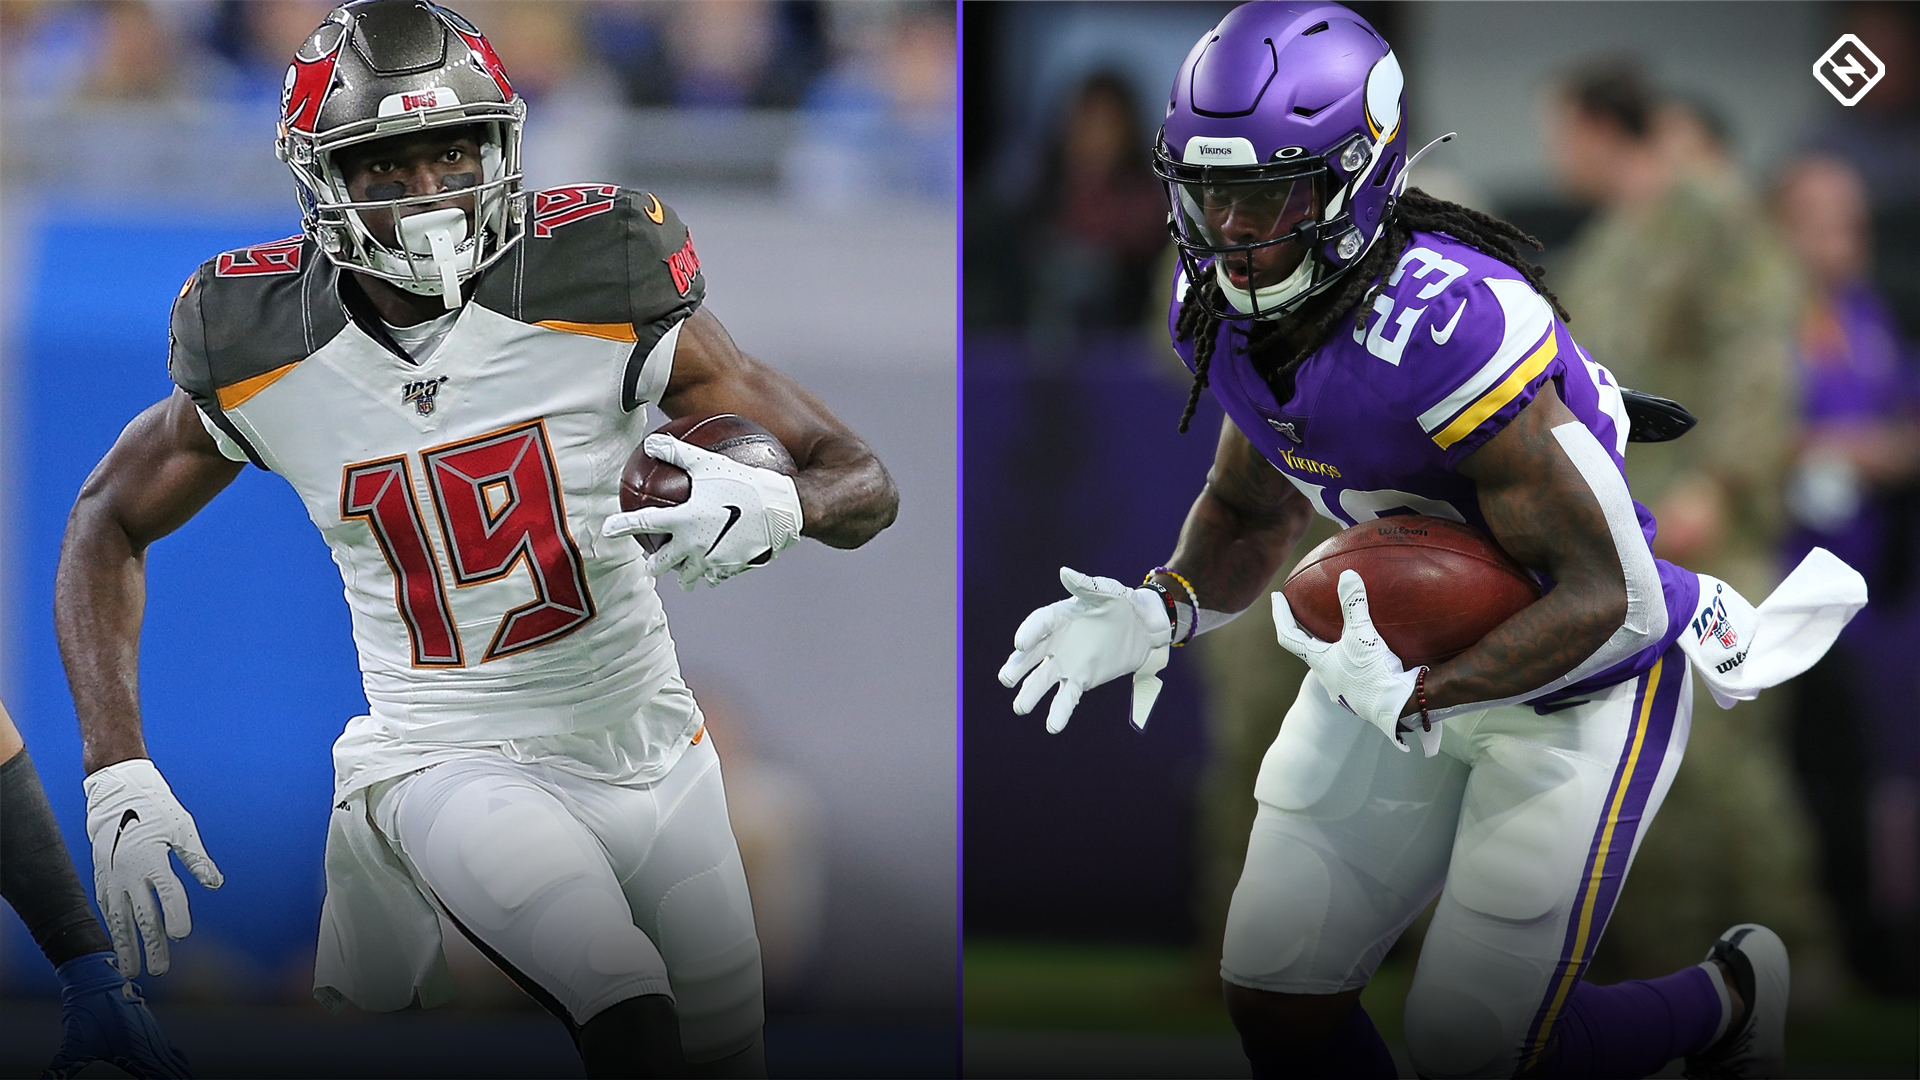 Best Fantasy Week 16 Waiver Pickups: Dalvin Cook injury opens door for Mike Boone, Breshad Perriman continues breakout